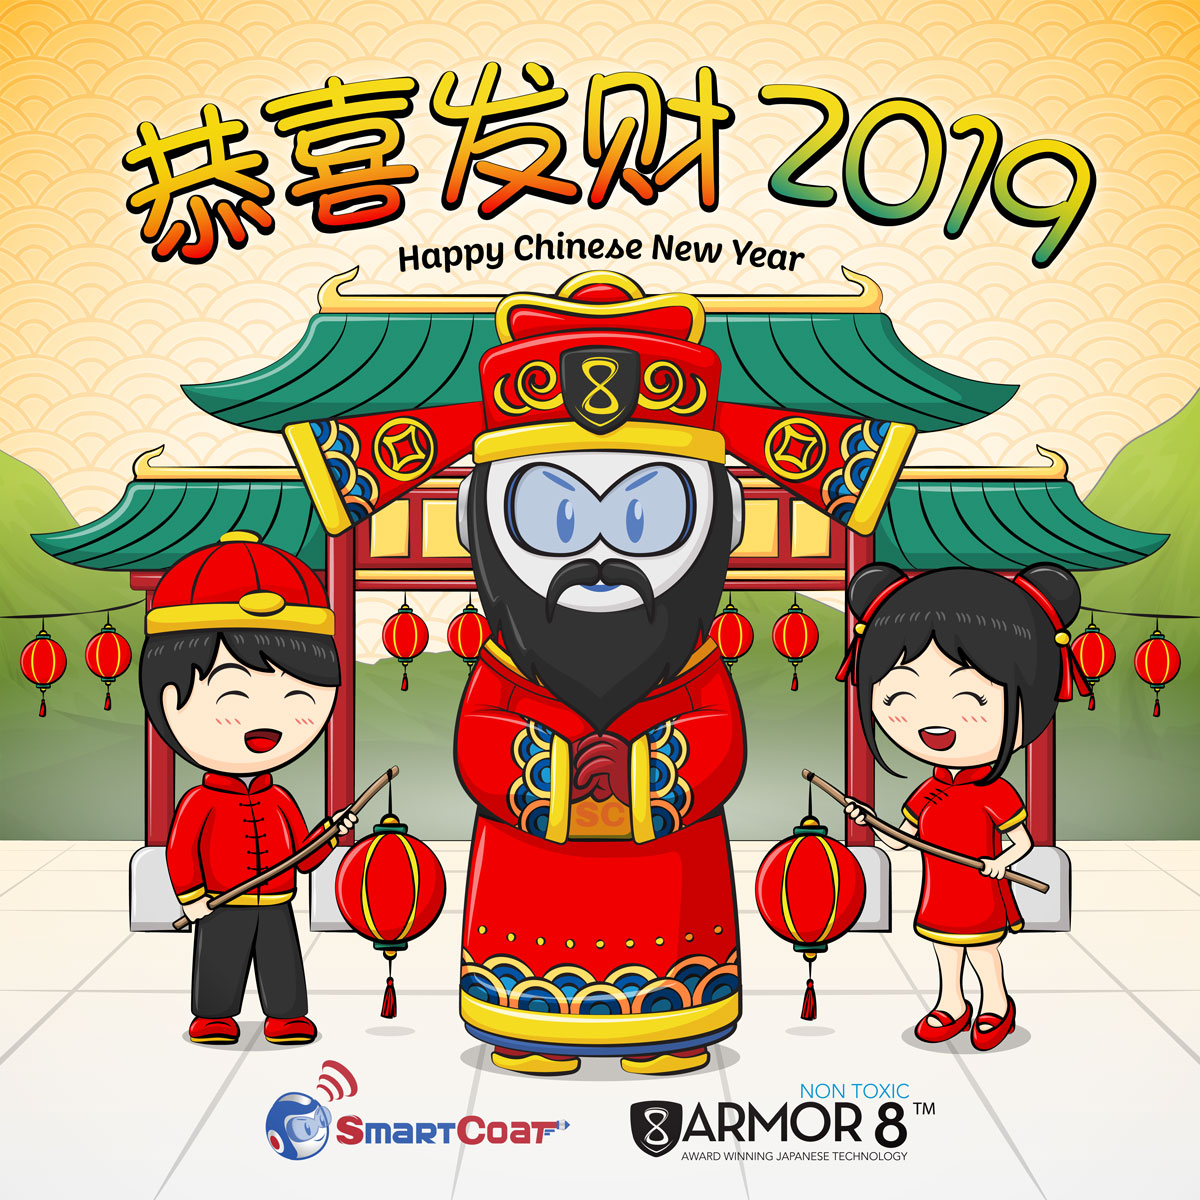 SmartCoat and Armor8 Happy Chinese New Year 2019 Facebook Post Design 04